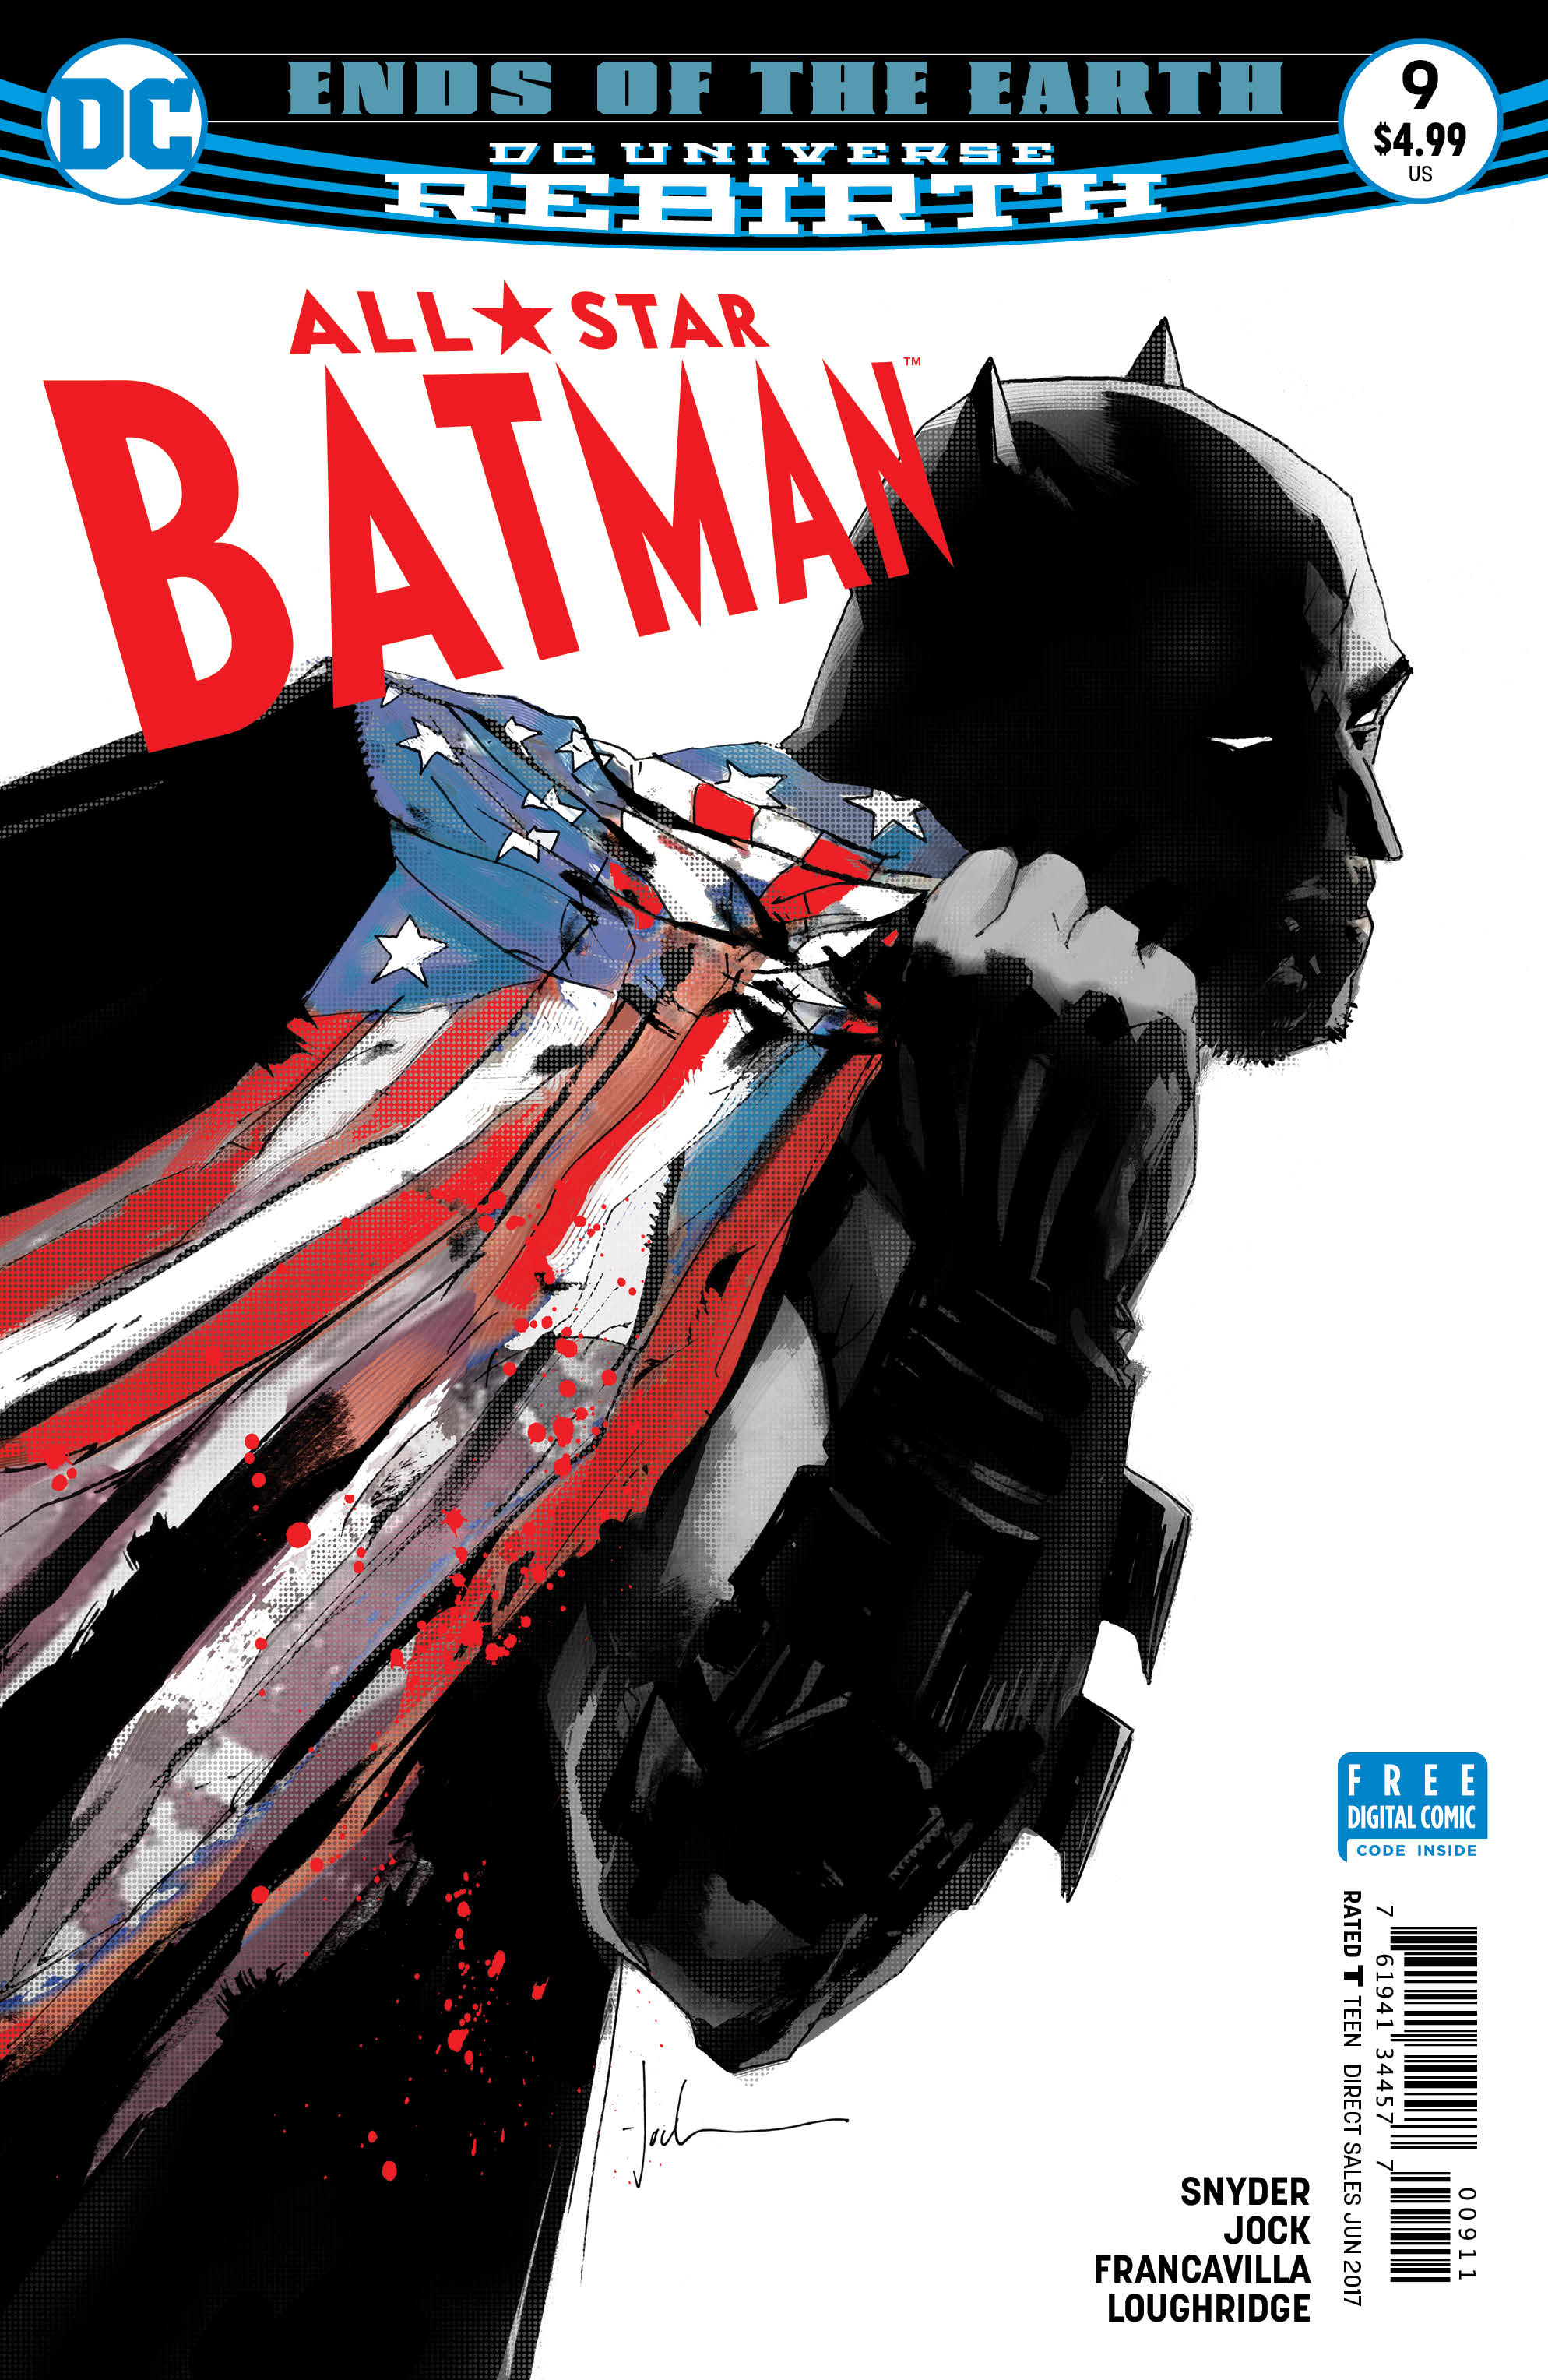 All-Star Batman #9 Review